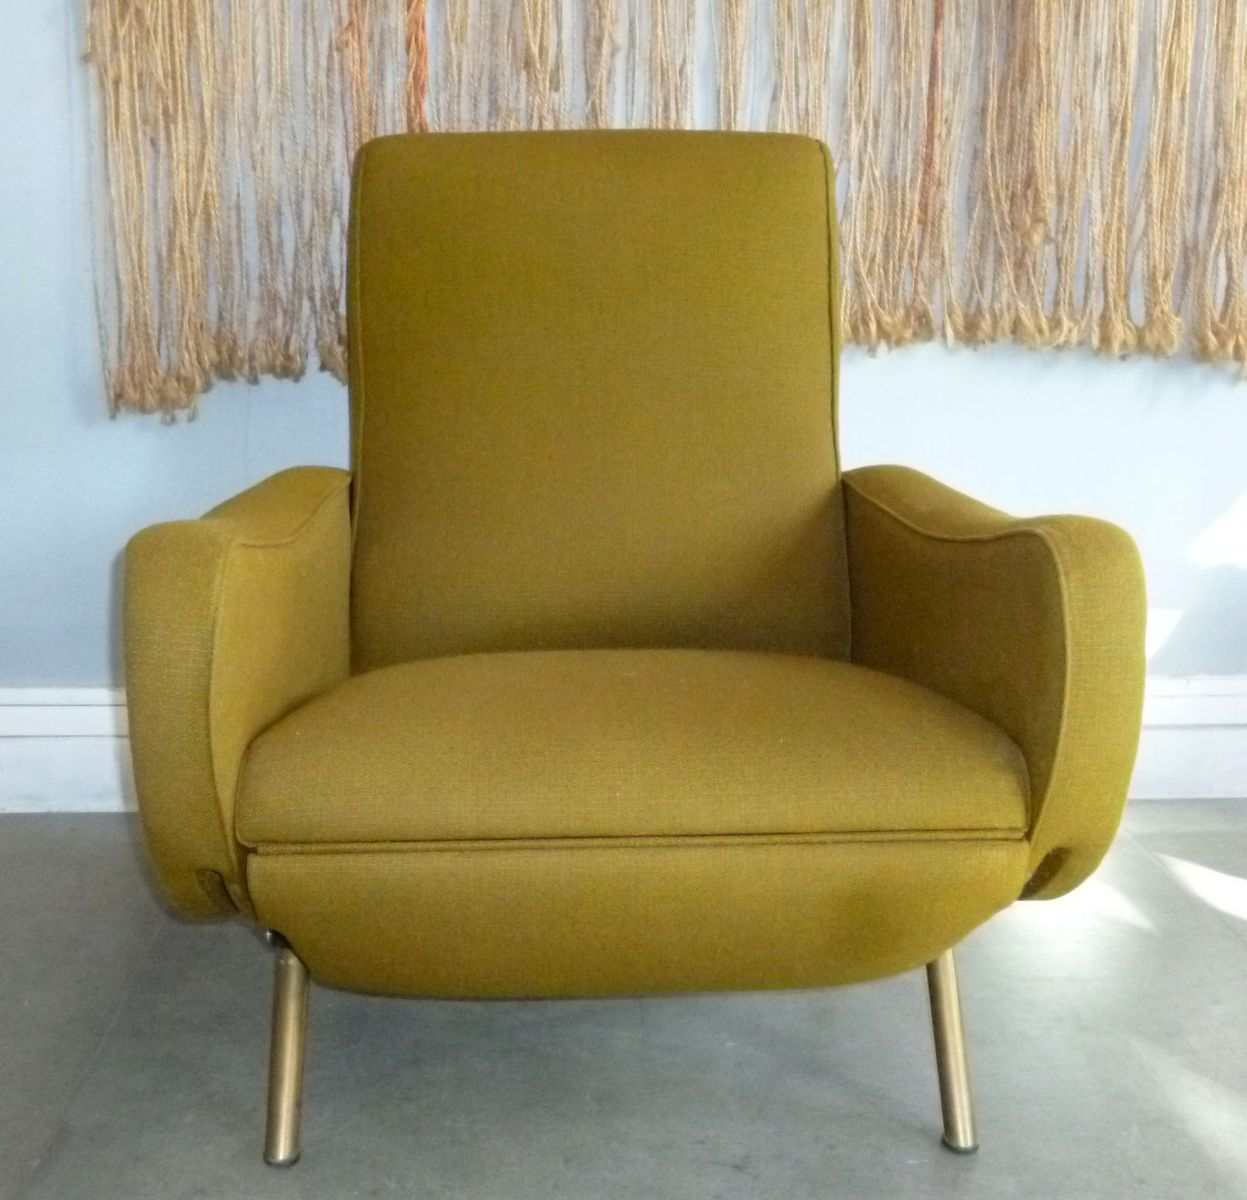 mid century lounge chair by marco zanuso 1950s for sale. Black Bedroom Furniture Sets. Home Design Ideas